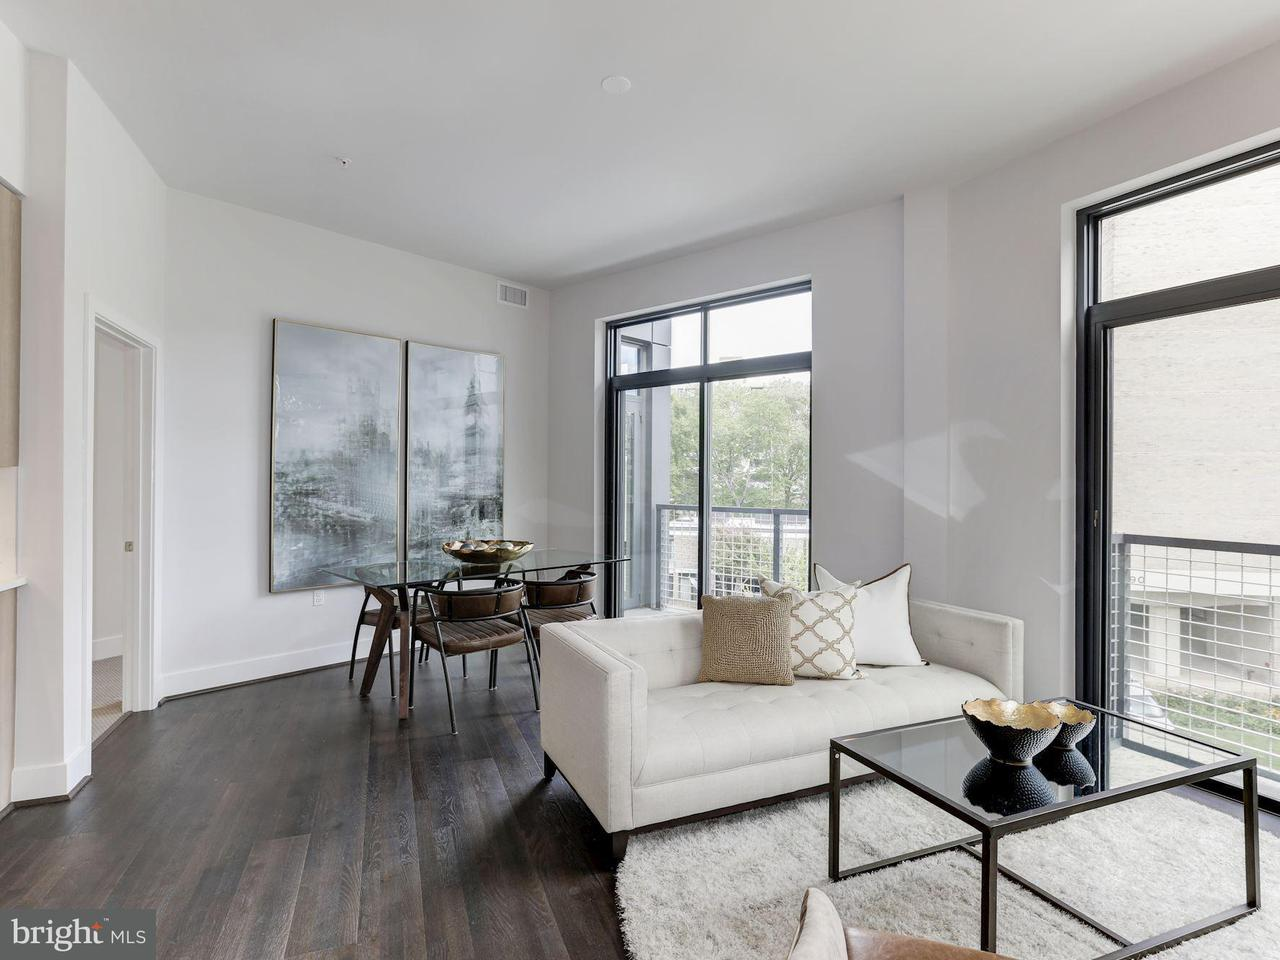 Additional photo for property listing at 525 WATER ST SW #420 525 WATER ST SW #420 Washington, District De Columbia 20024 États-Unis